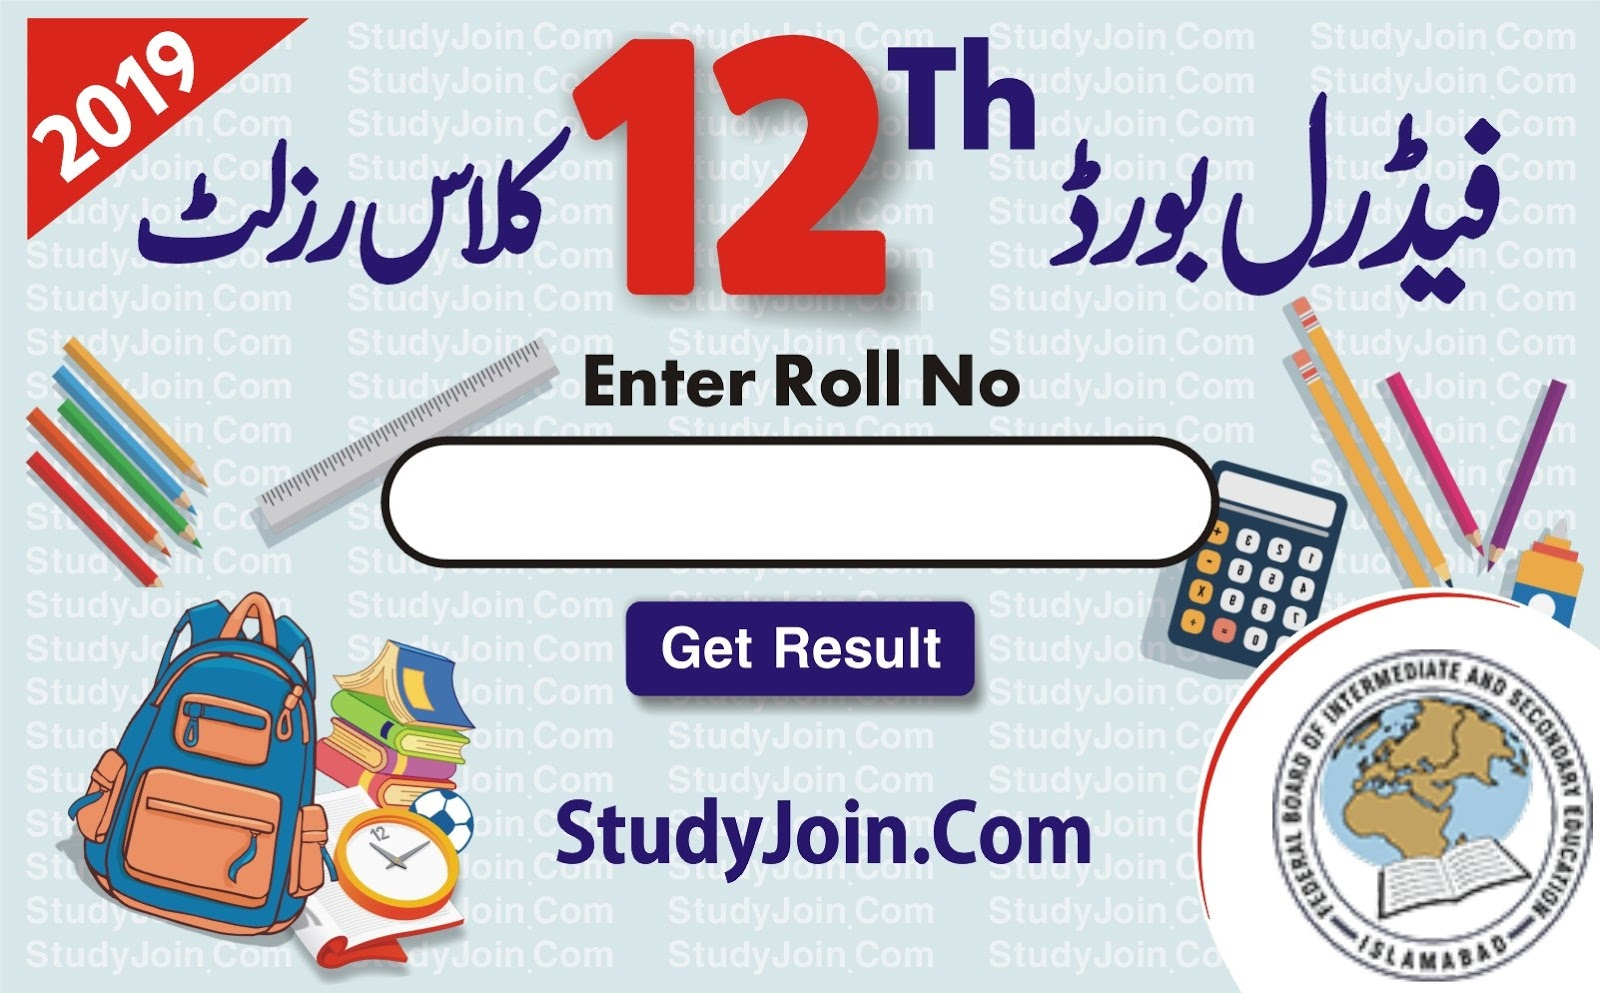 bise federal board 12th class result 2018, fbise result 2018 hssc 2, www.fbise.edu.pk result 2018, fbise result 2018 hssc 2, federal board result 2019, 12th class result 2018 federal board, fbise result 2018 ssc 2, federal board result search by name, federal board result 2019, federal board result search by name 2019, 2nd year result 2018 federal board, BISE Federal SSC, HSSC, FA, FSc, ICS ICom Result 2019, ilmkidunya result 2019, ilm ki duniya result 2019 12th class